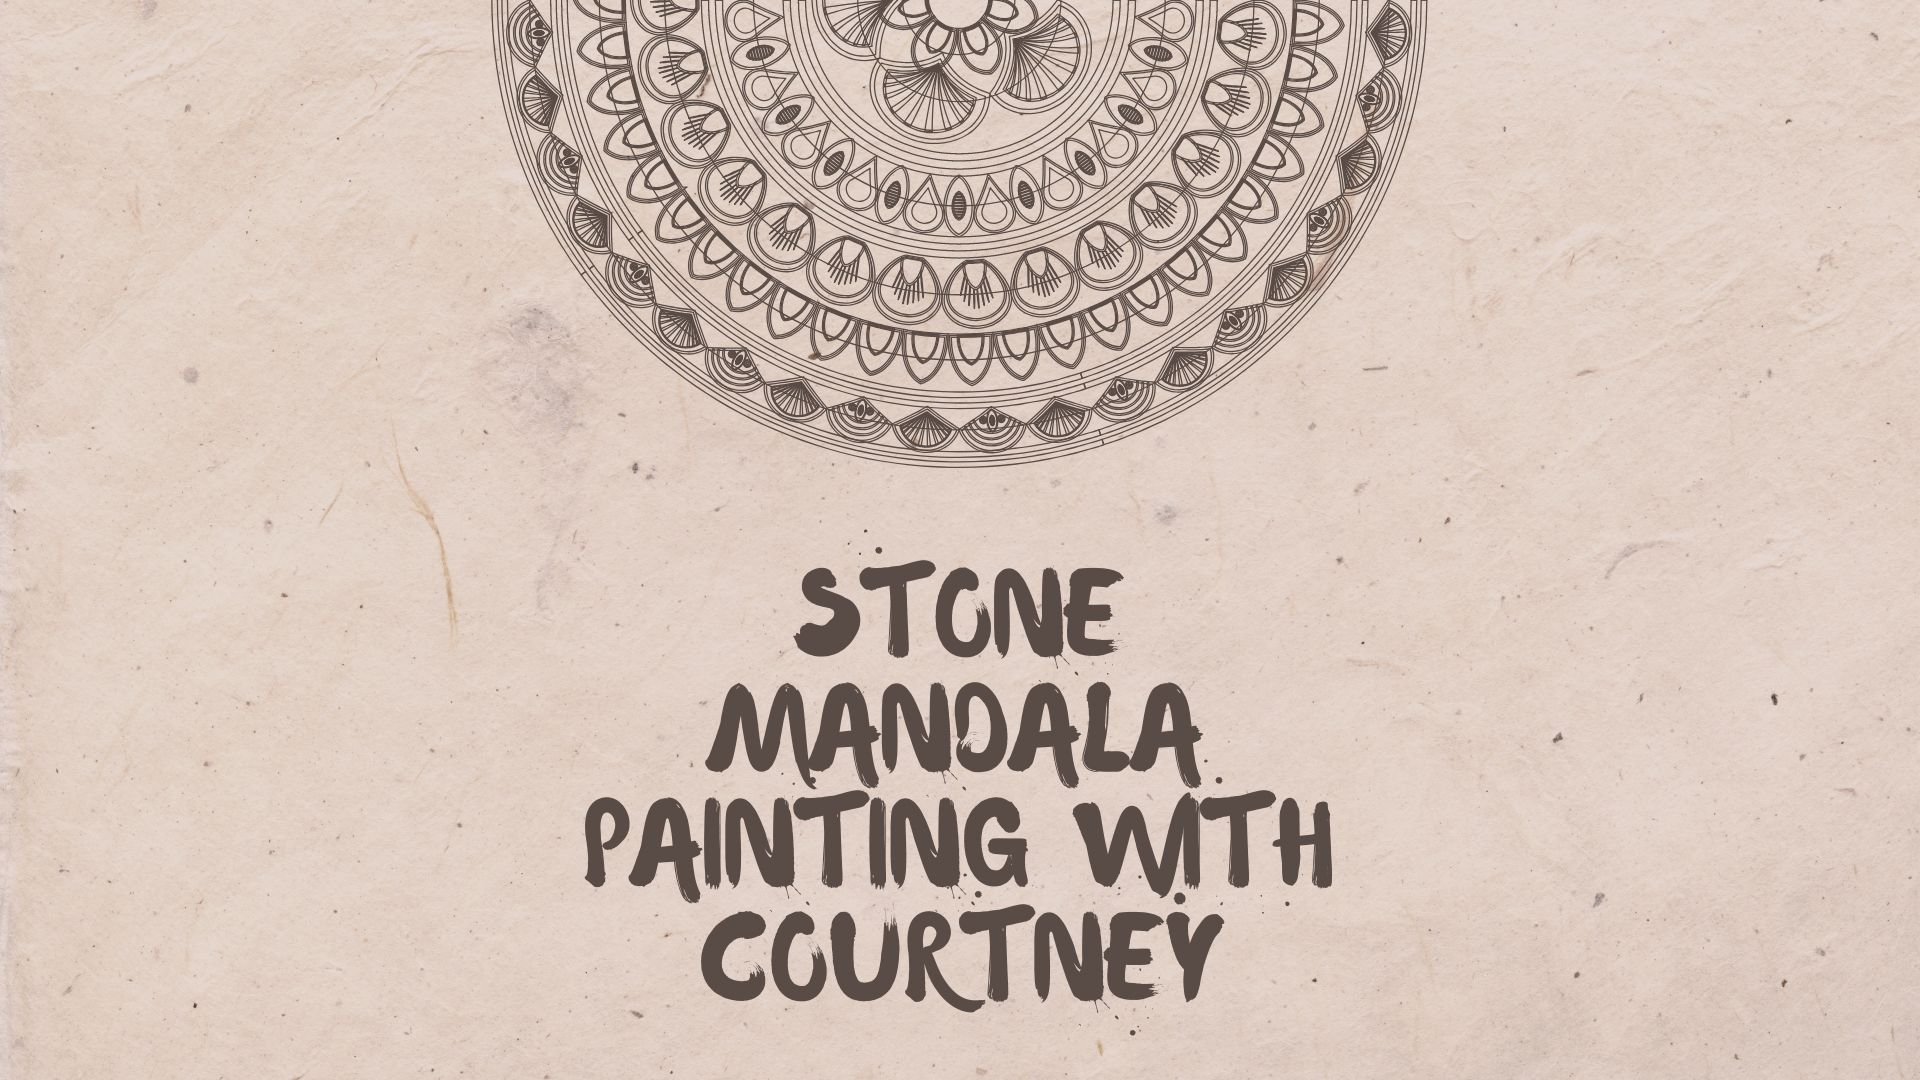 Copy of Copy of Stone Mandala Painting FB Event Cover Post 8.7.19.jpg